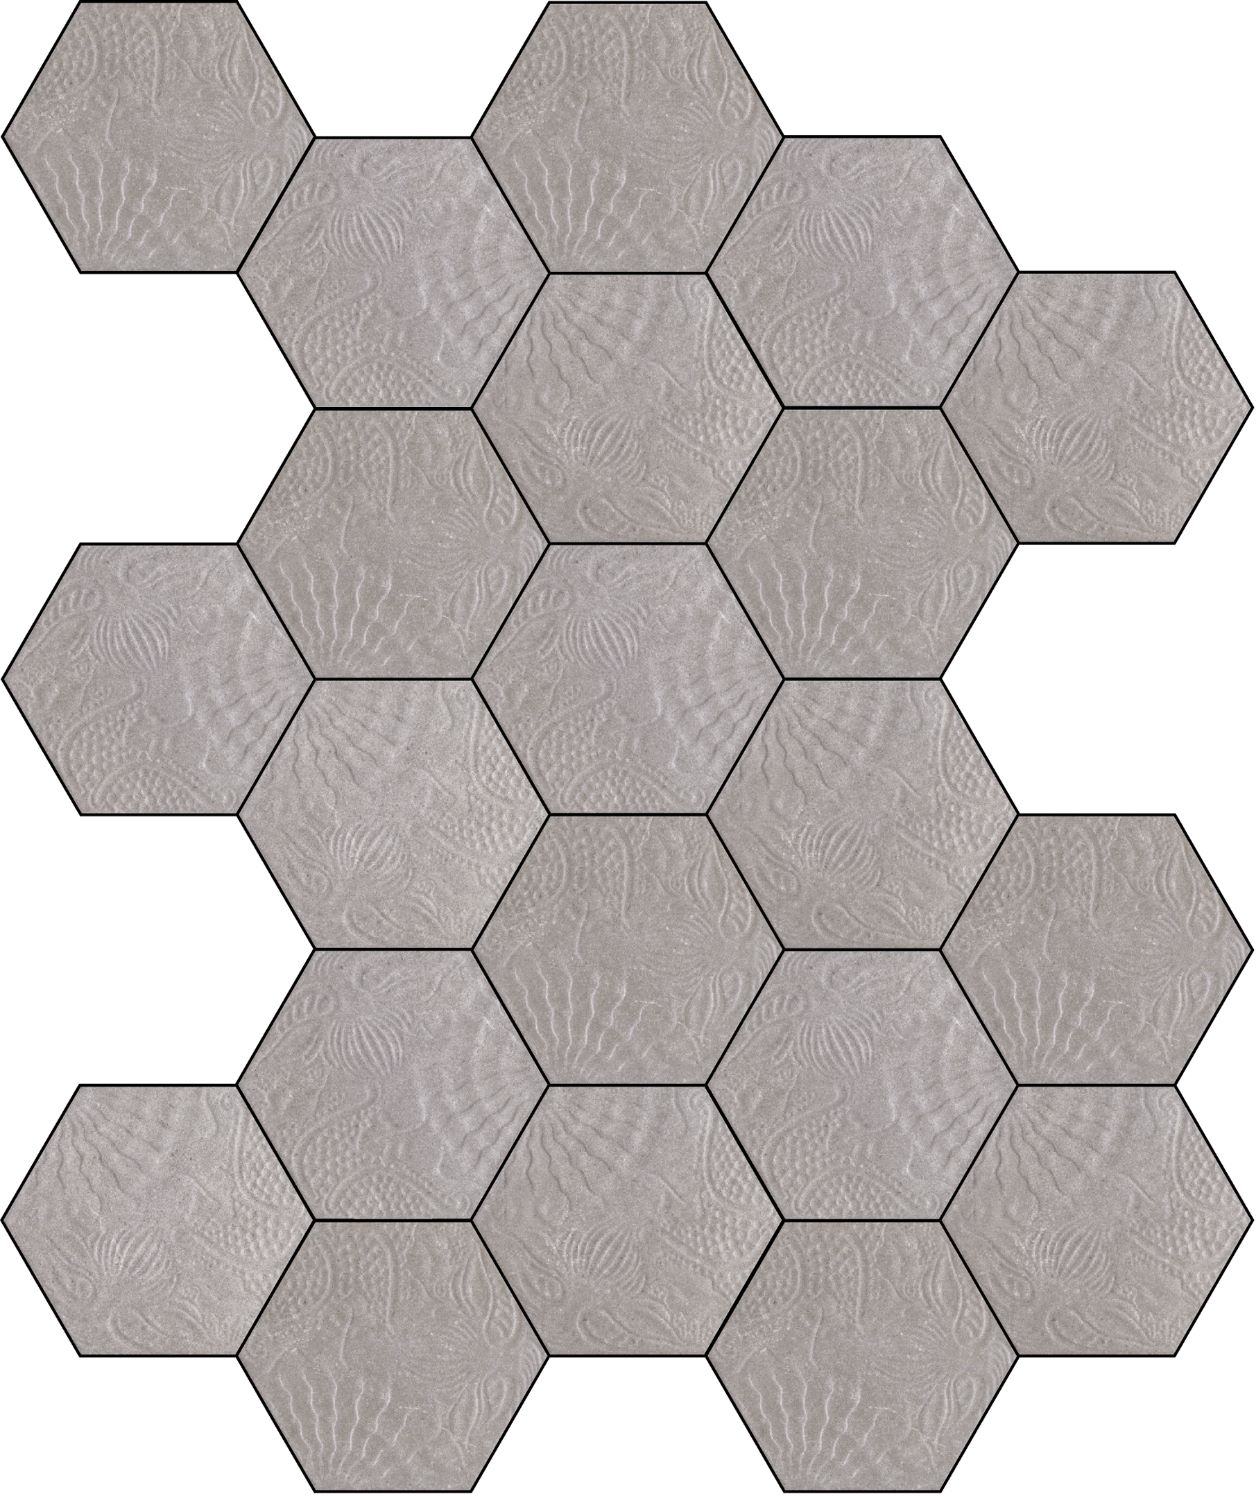 Hexagon spielen